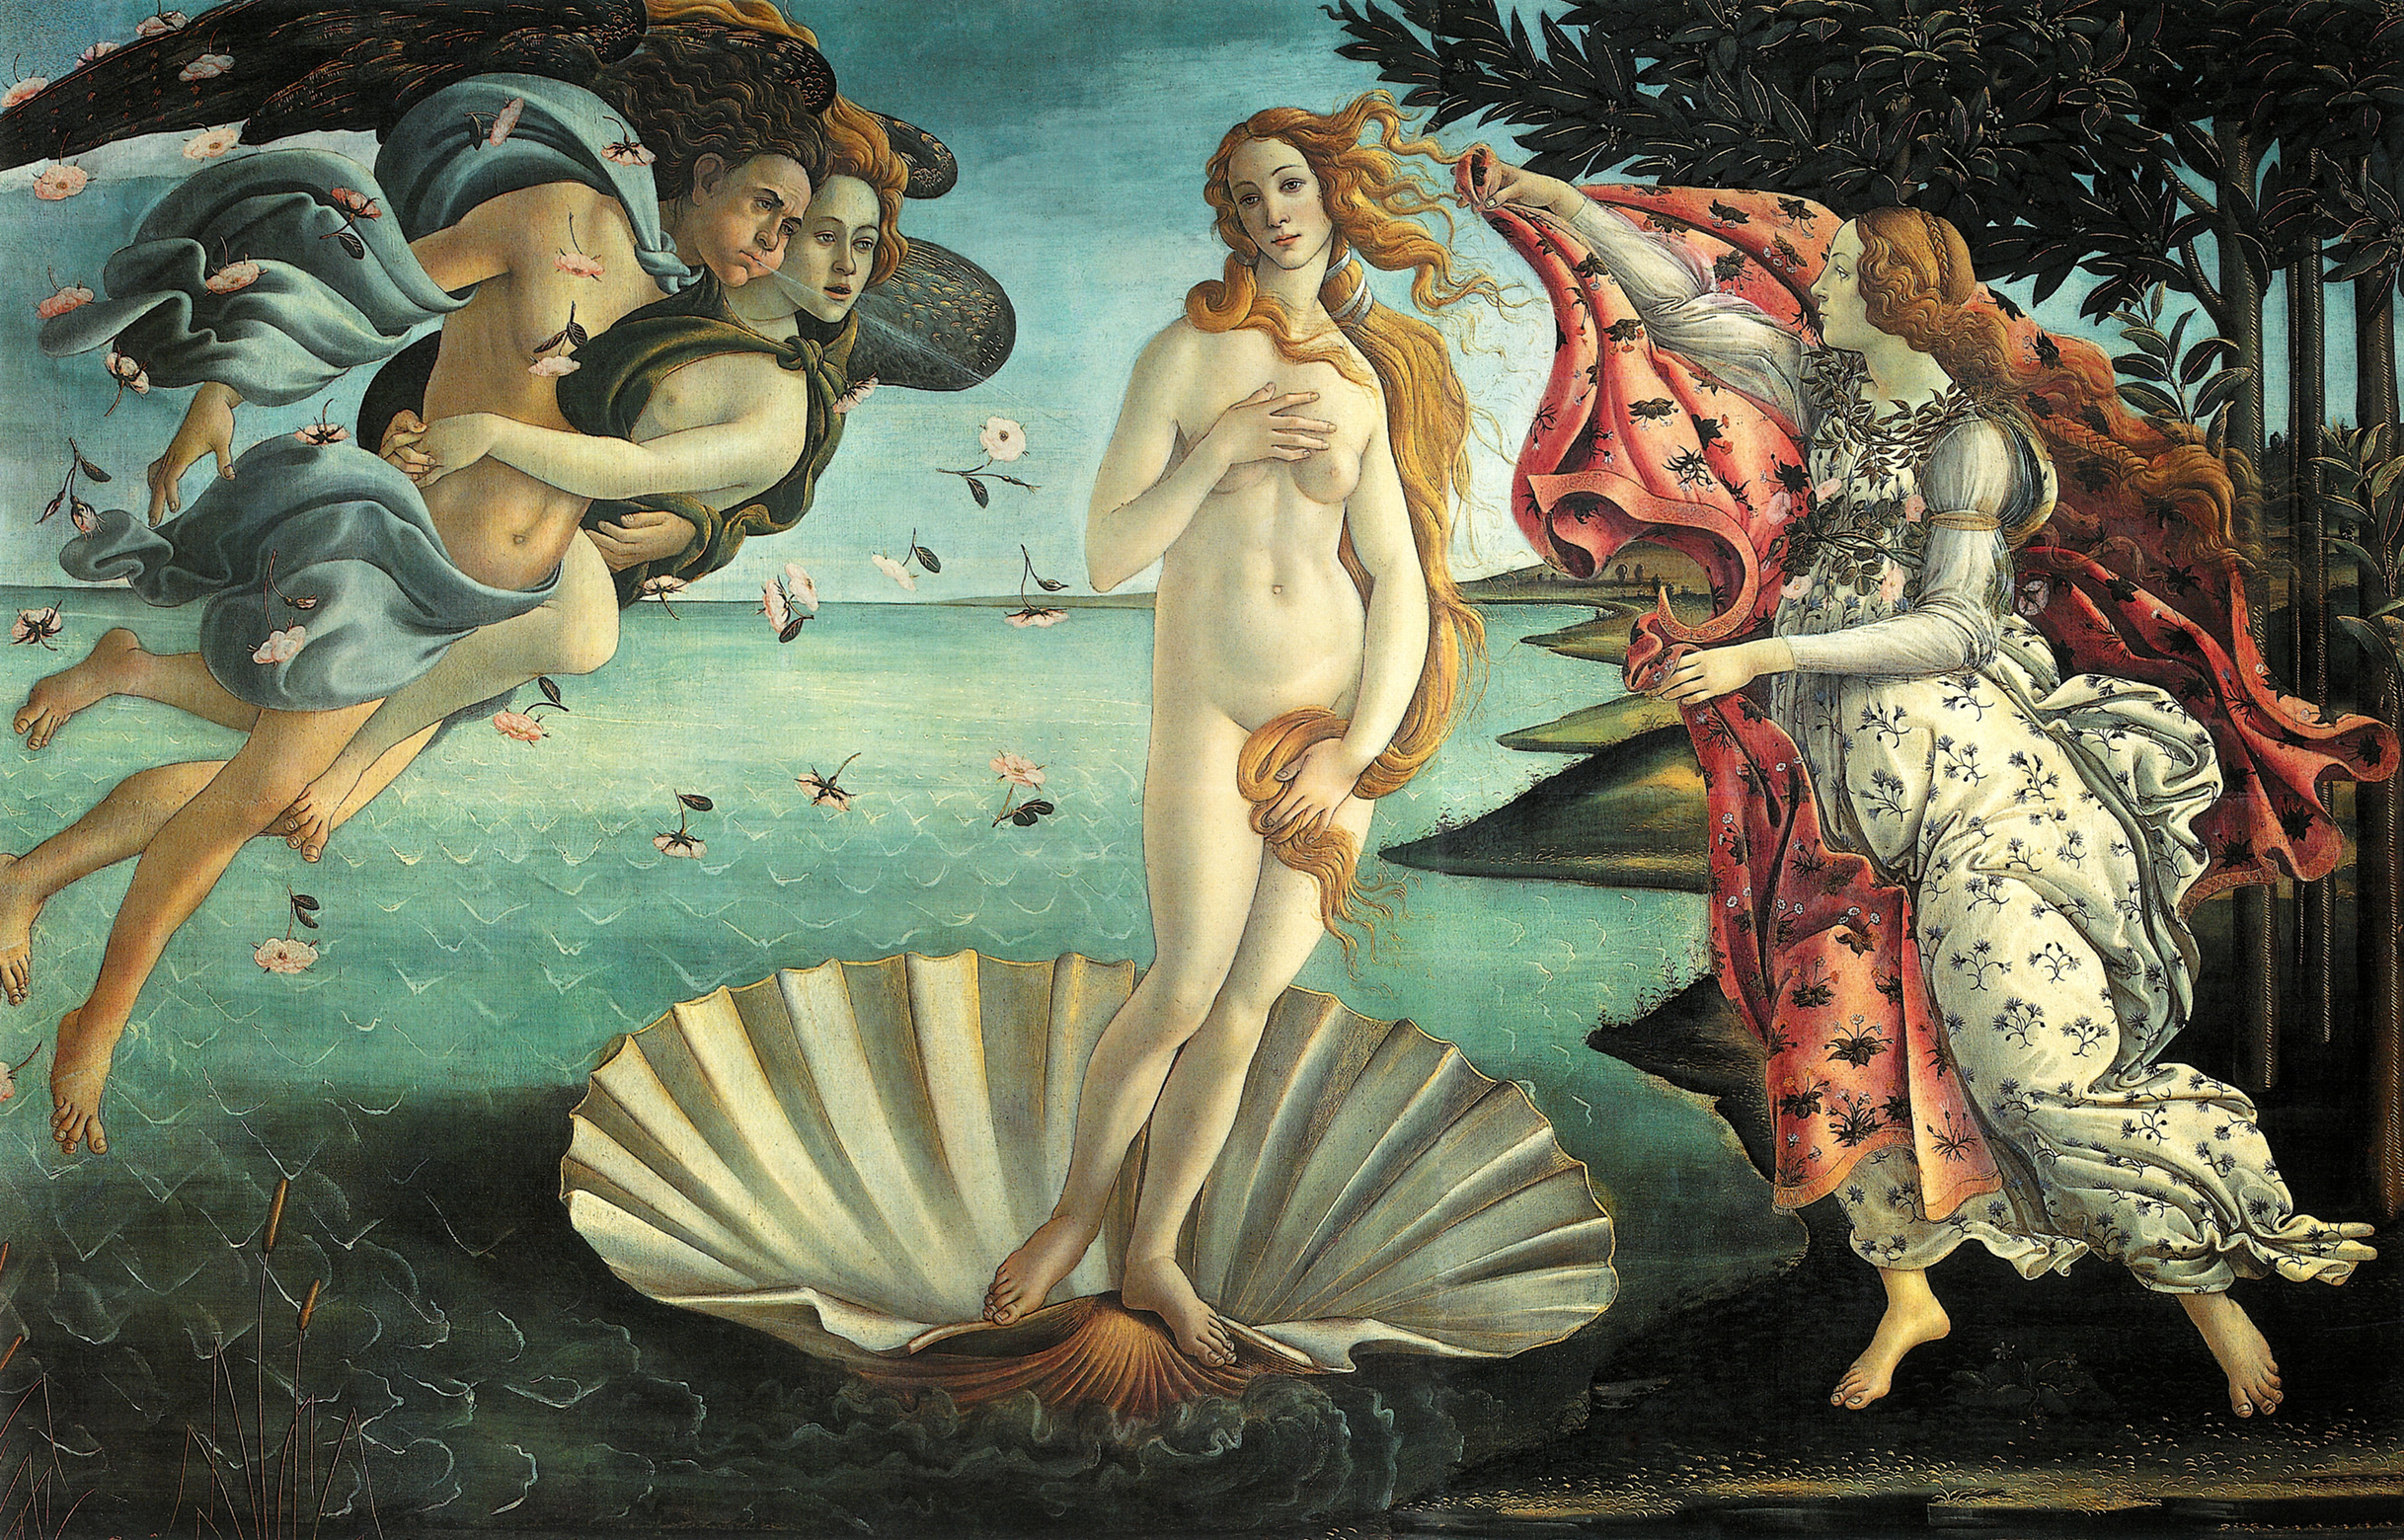 http://upload.wikimedia.org/wikipedia/commons/4/47/La_nascita_di_Venere_%28Botticelli%29.jpg